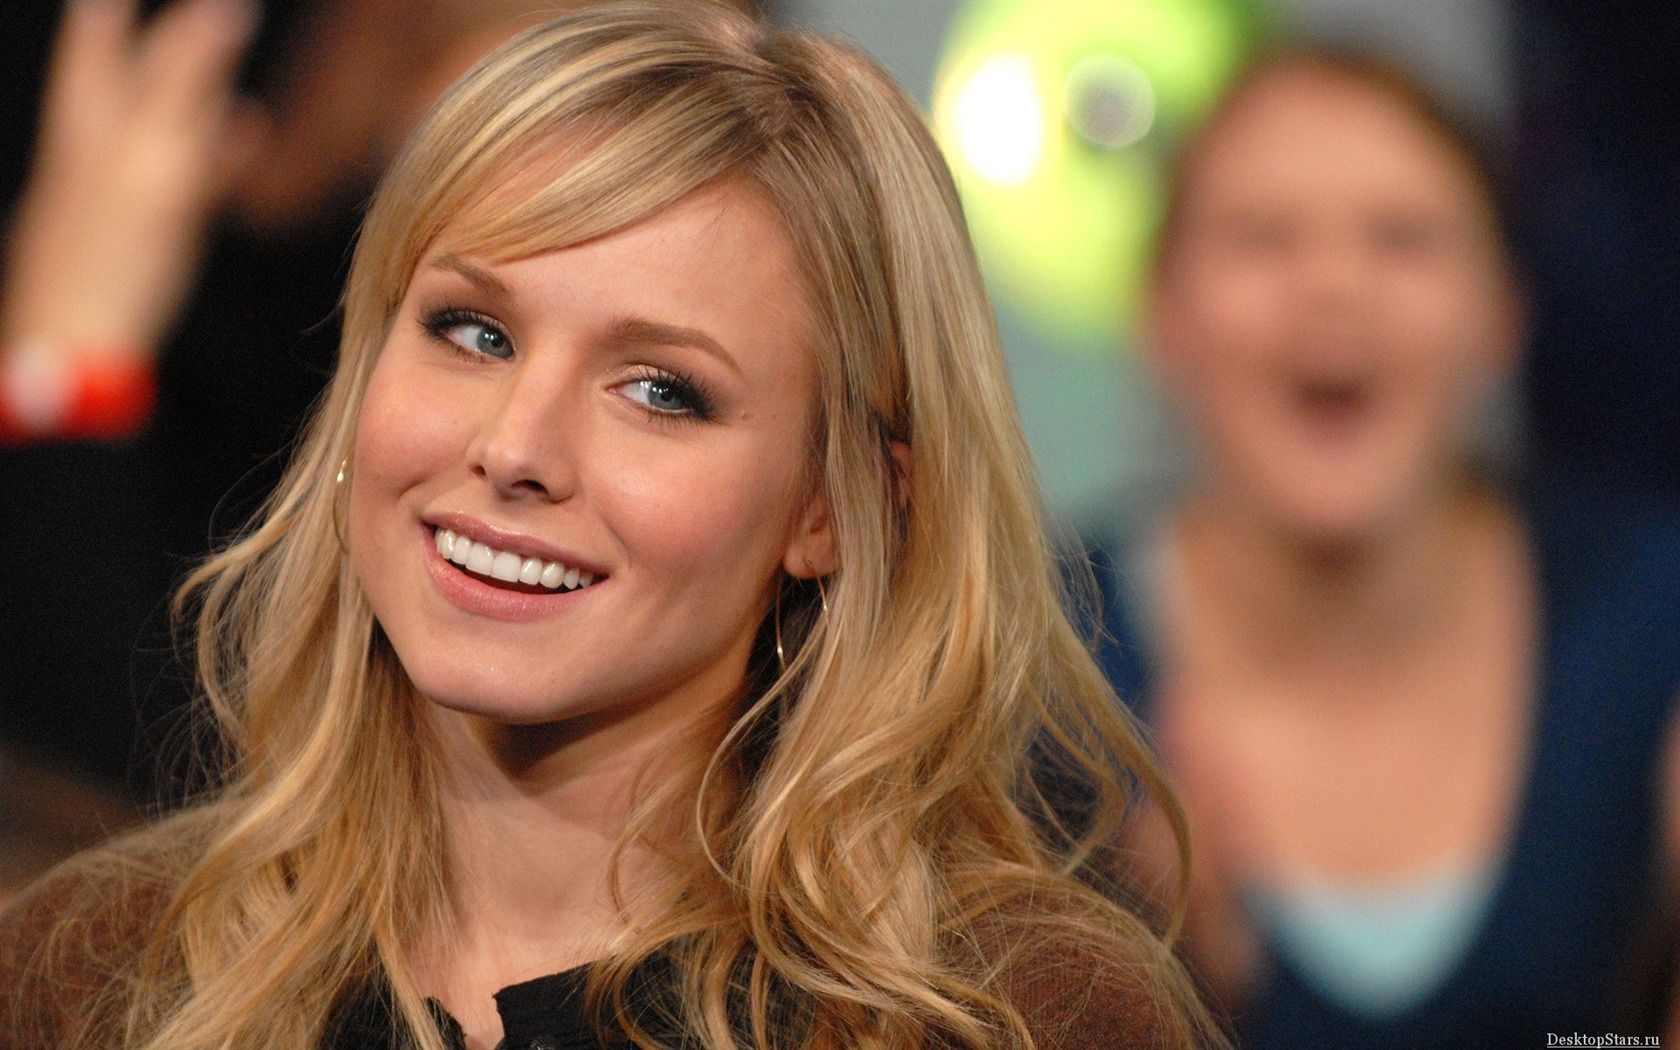 Kristen Bell #028 - 1680x1050 Wallpapers Pictures Photos Images